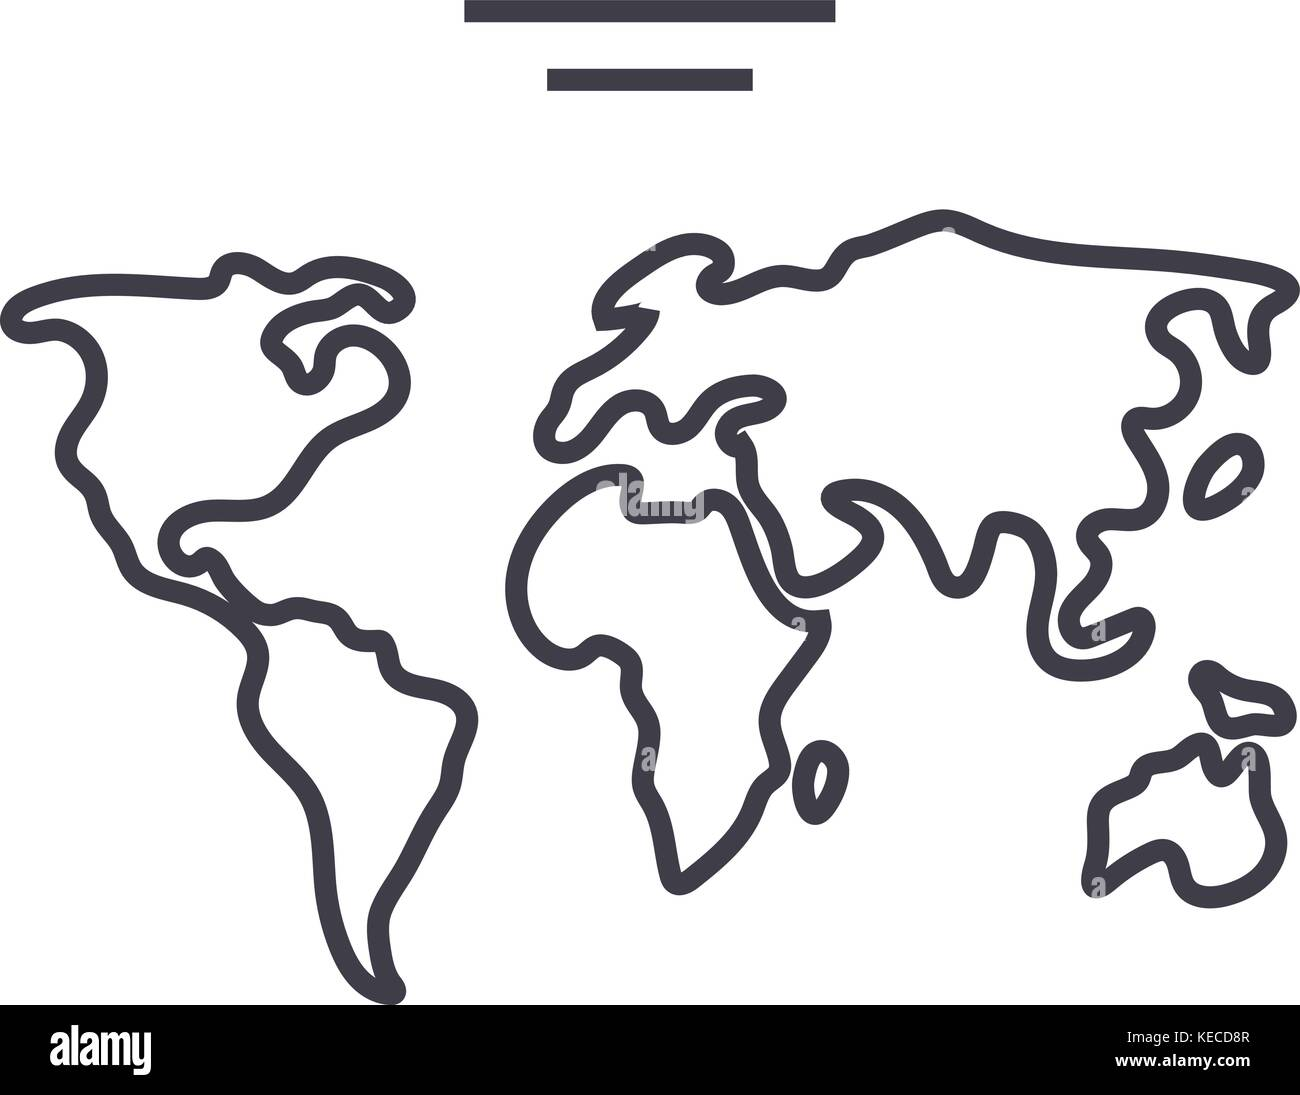 world map vector line icon, sign, illustration on background